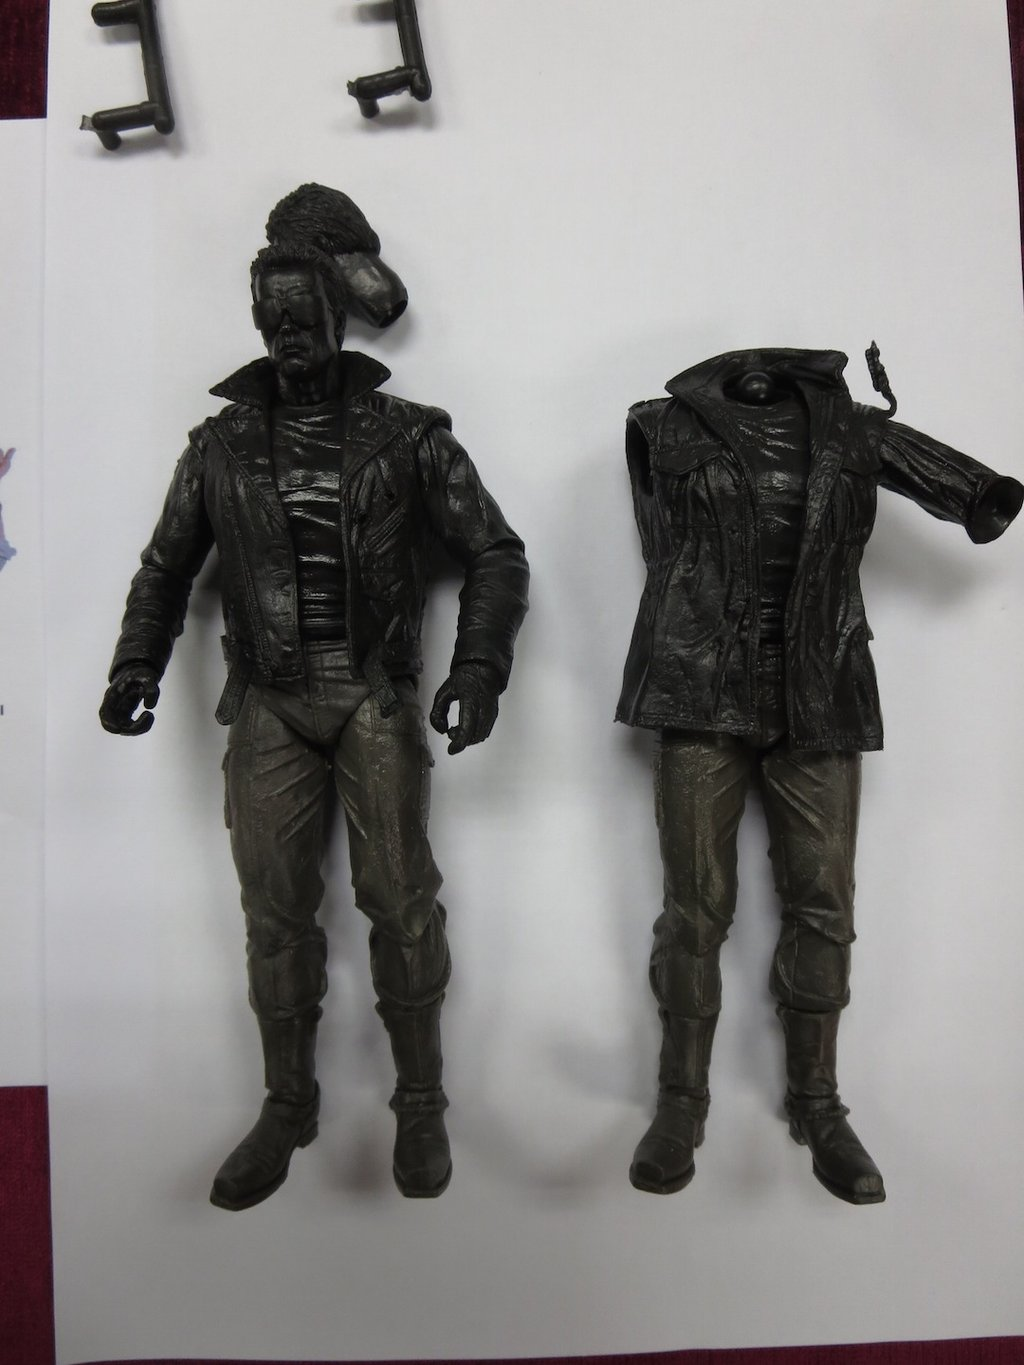 NECA Toys Previews Two T-800 Ultimate Terminator Figures